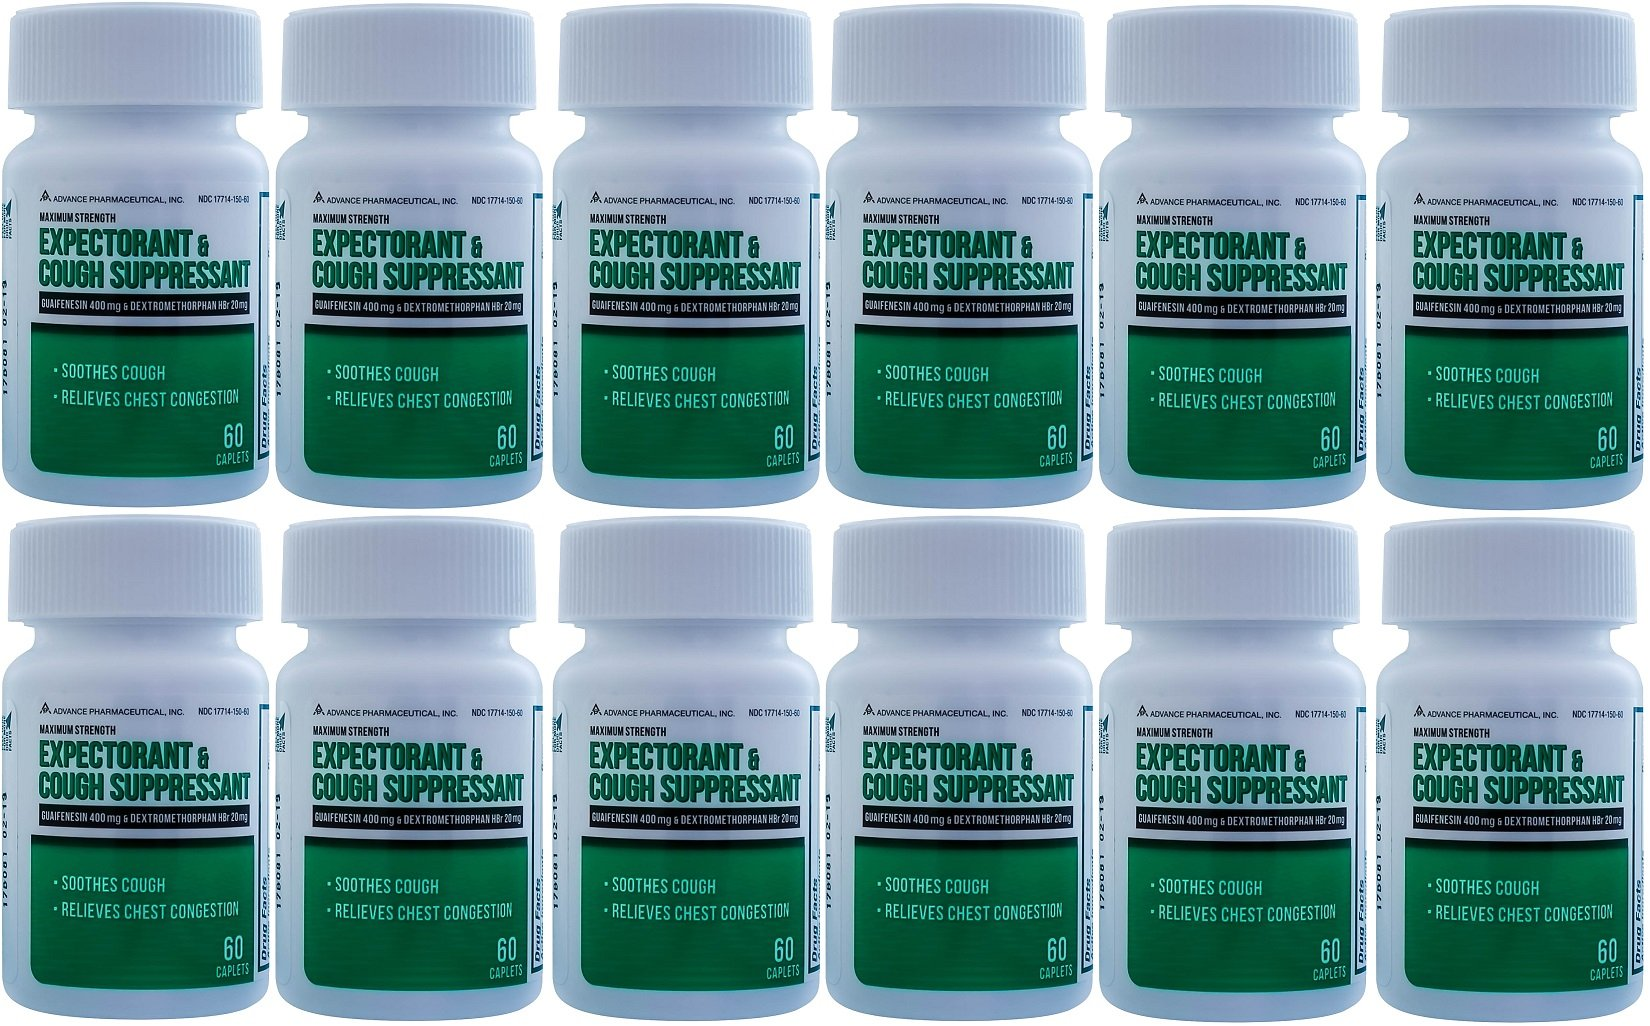 Mucus DM Expectorant Cough Suppressant 720 Caplets Generic DM Cough by Advance Pharmaceutical